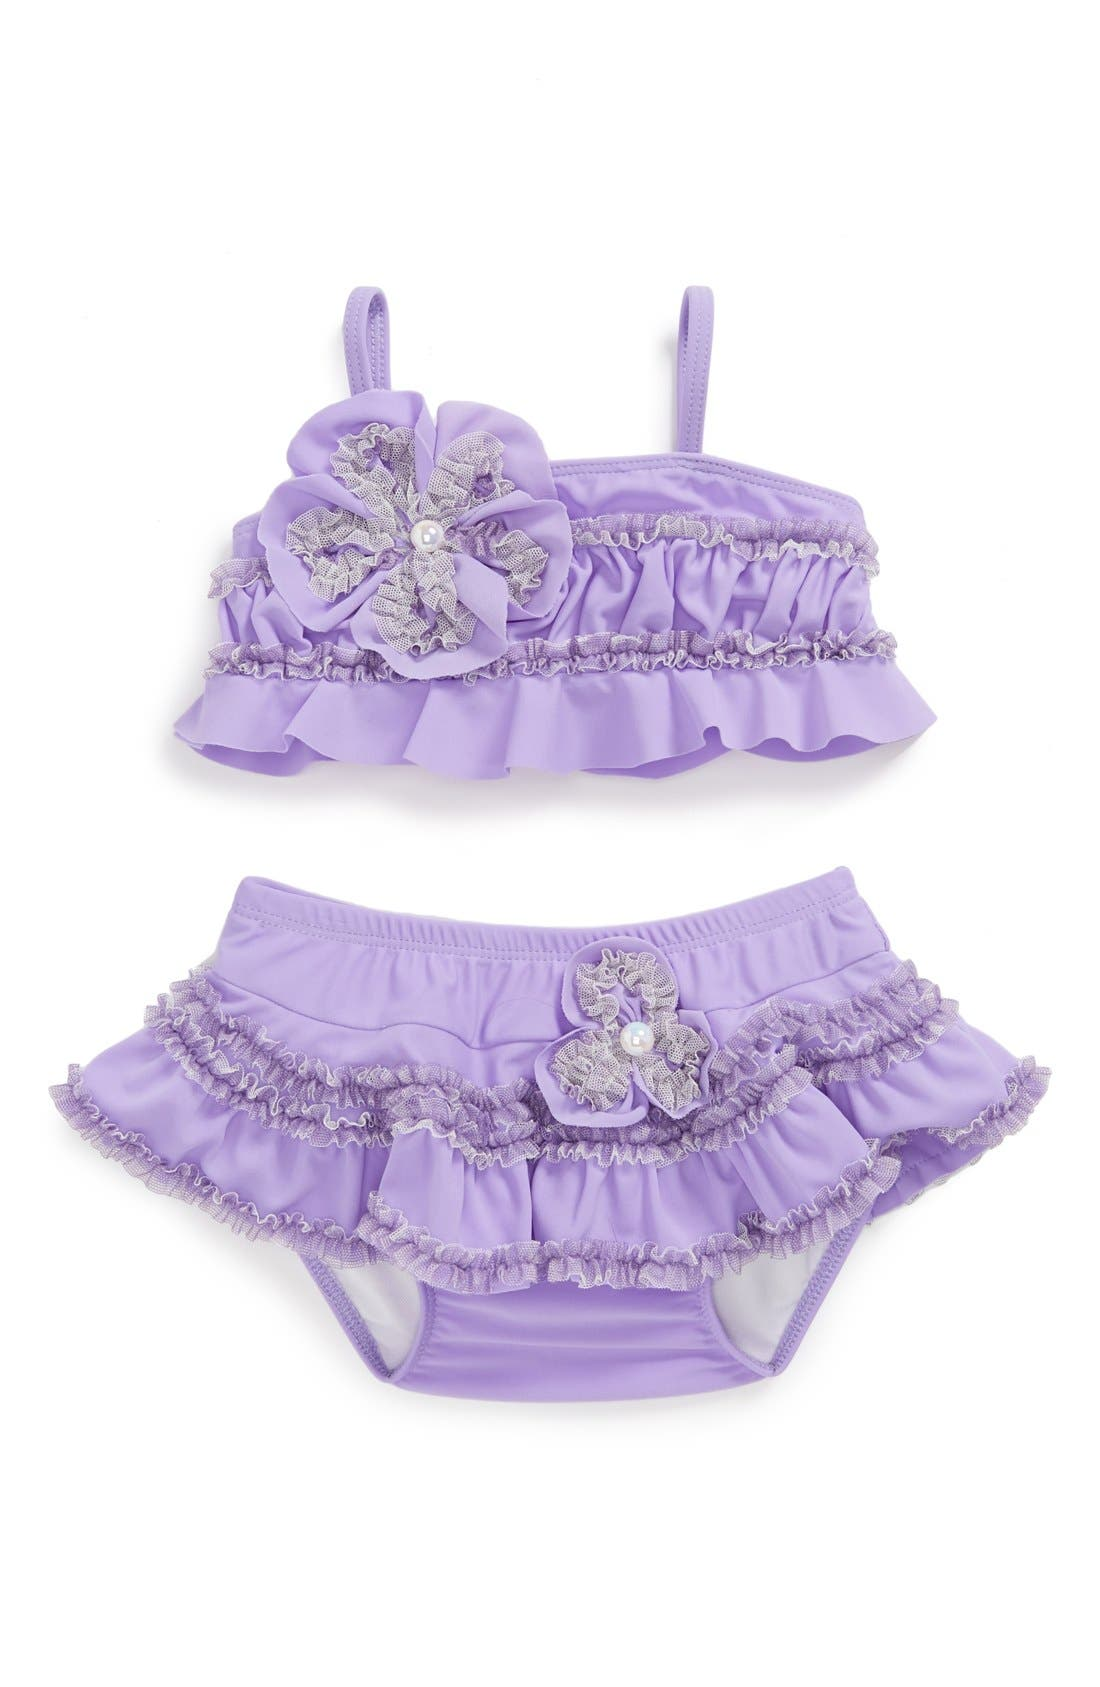 Alternate Image 1 Selected - Isobella & Chloe 'Plum Passion' Two-Piece Swimsuit (Baby Girls)